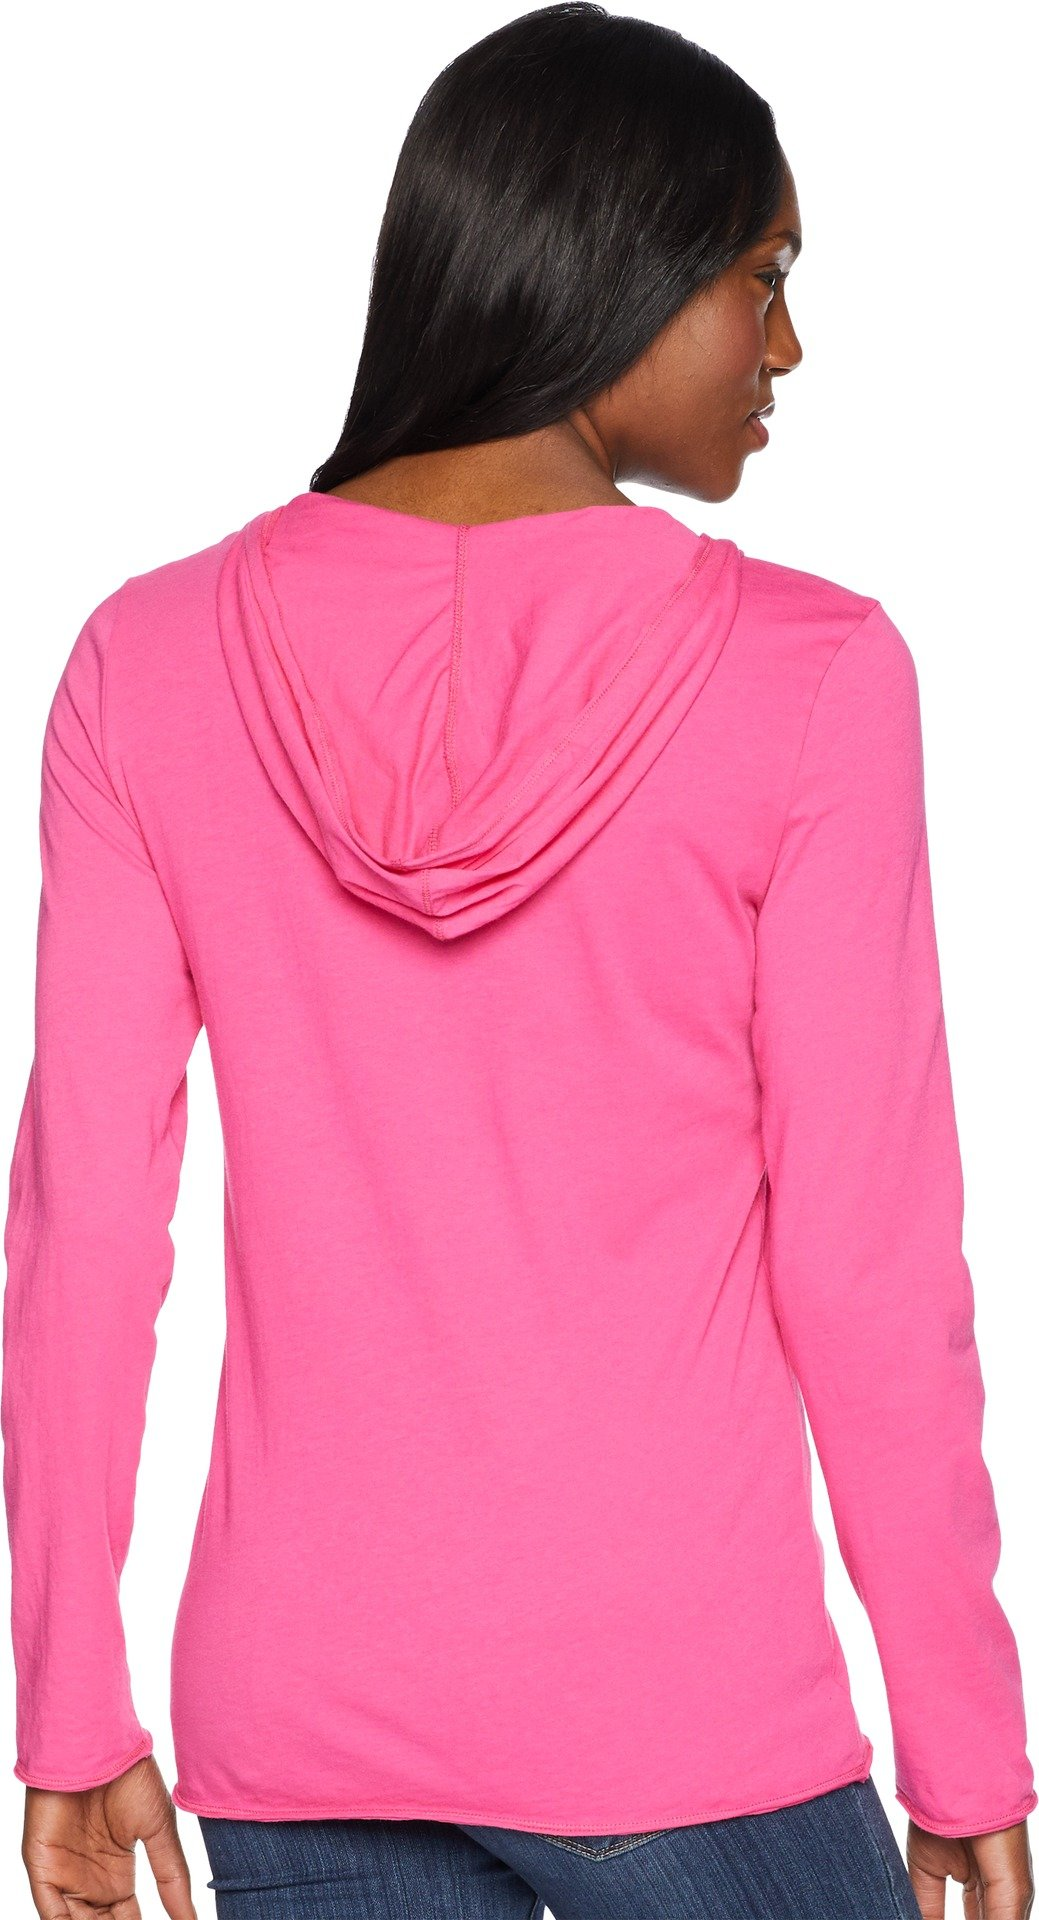 Life is Good Womens Hooded Smooth Longsleeve tee Daisy Love, Fiesta Pink, Large by Life is Good (Image #3)